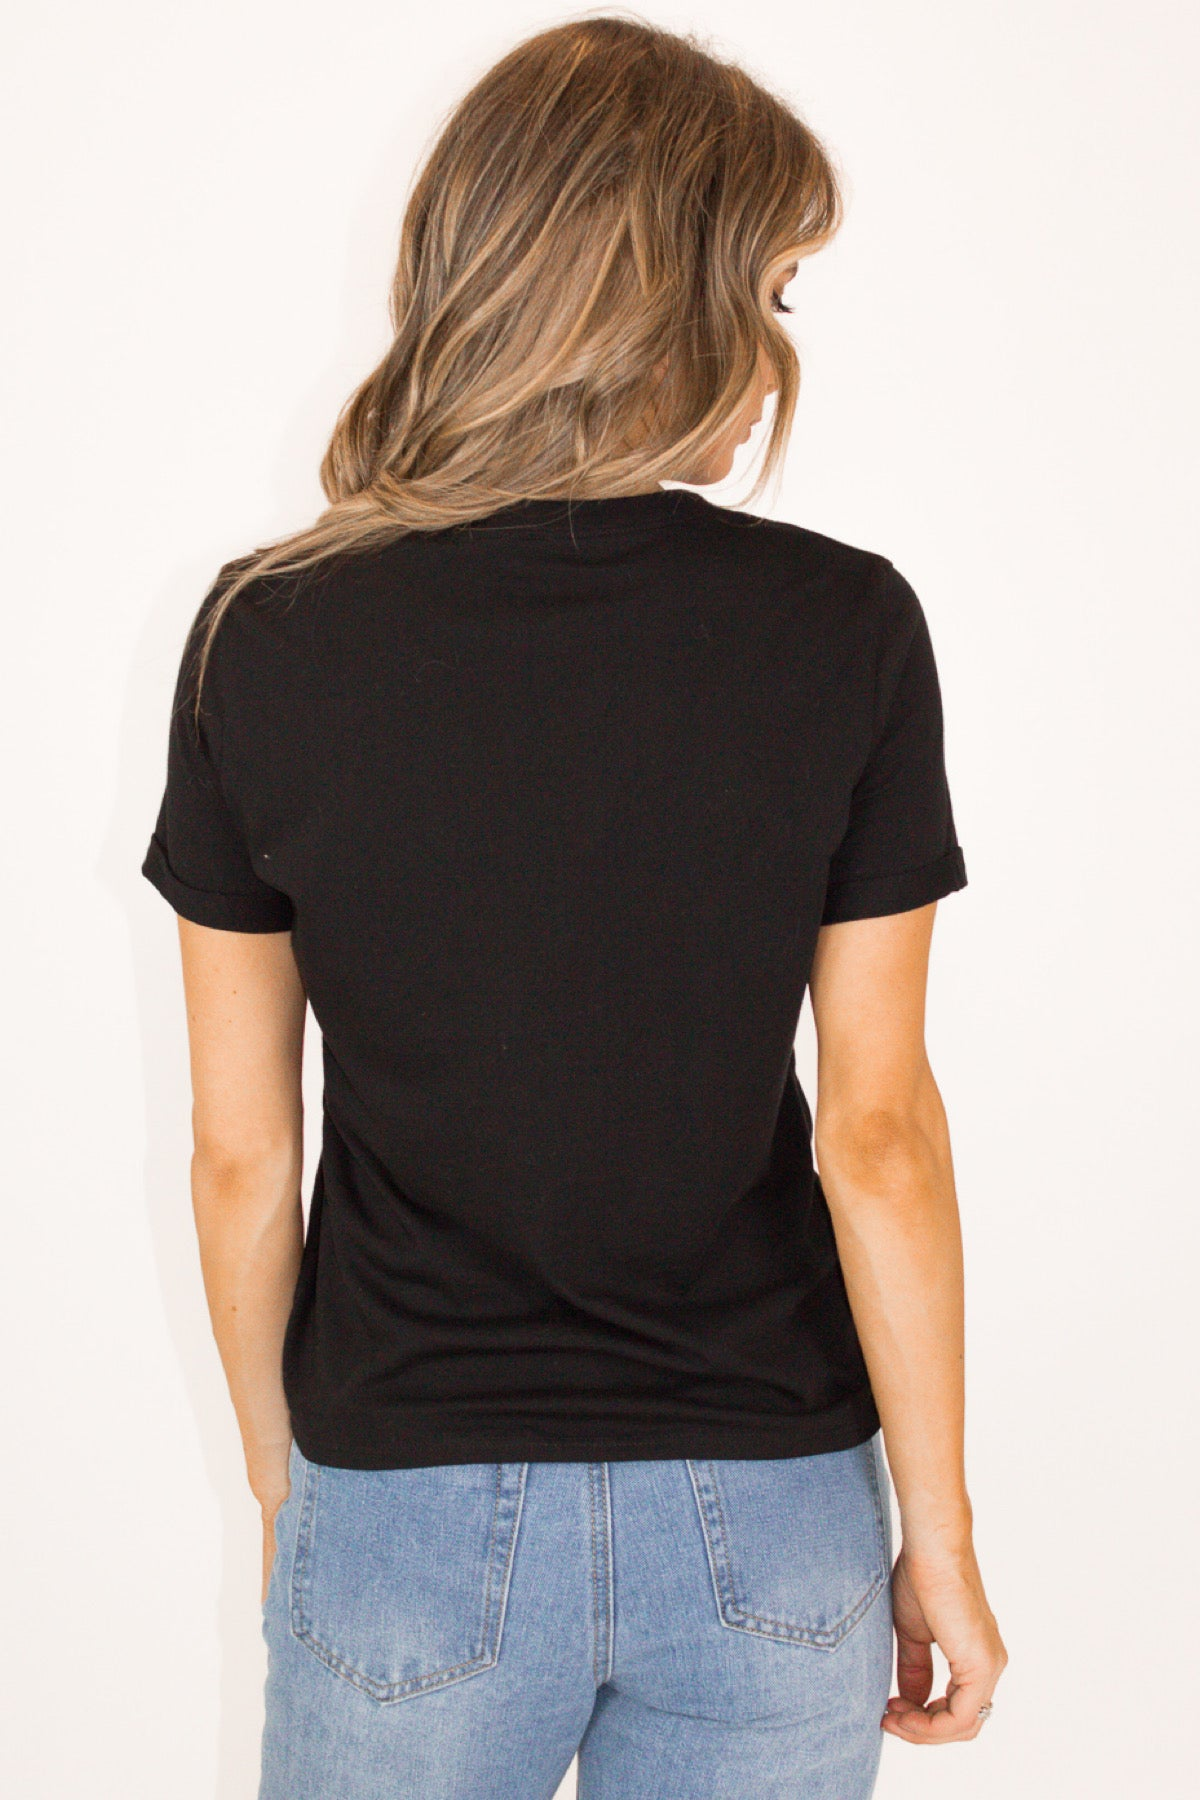 BANG GRAPHIC TEE IN BLACK